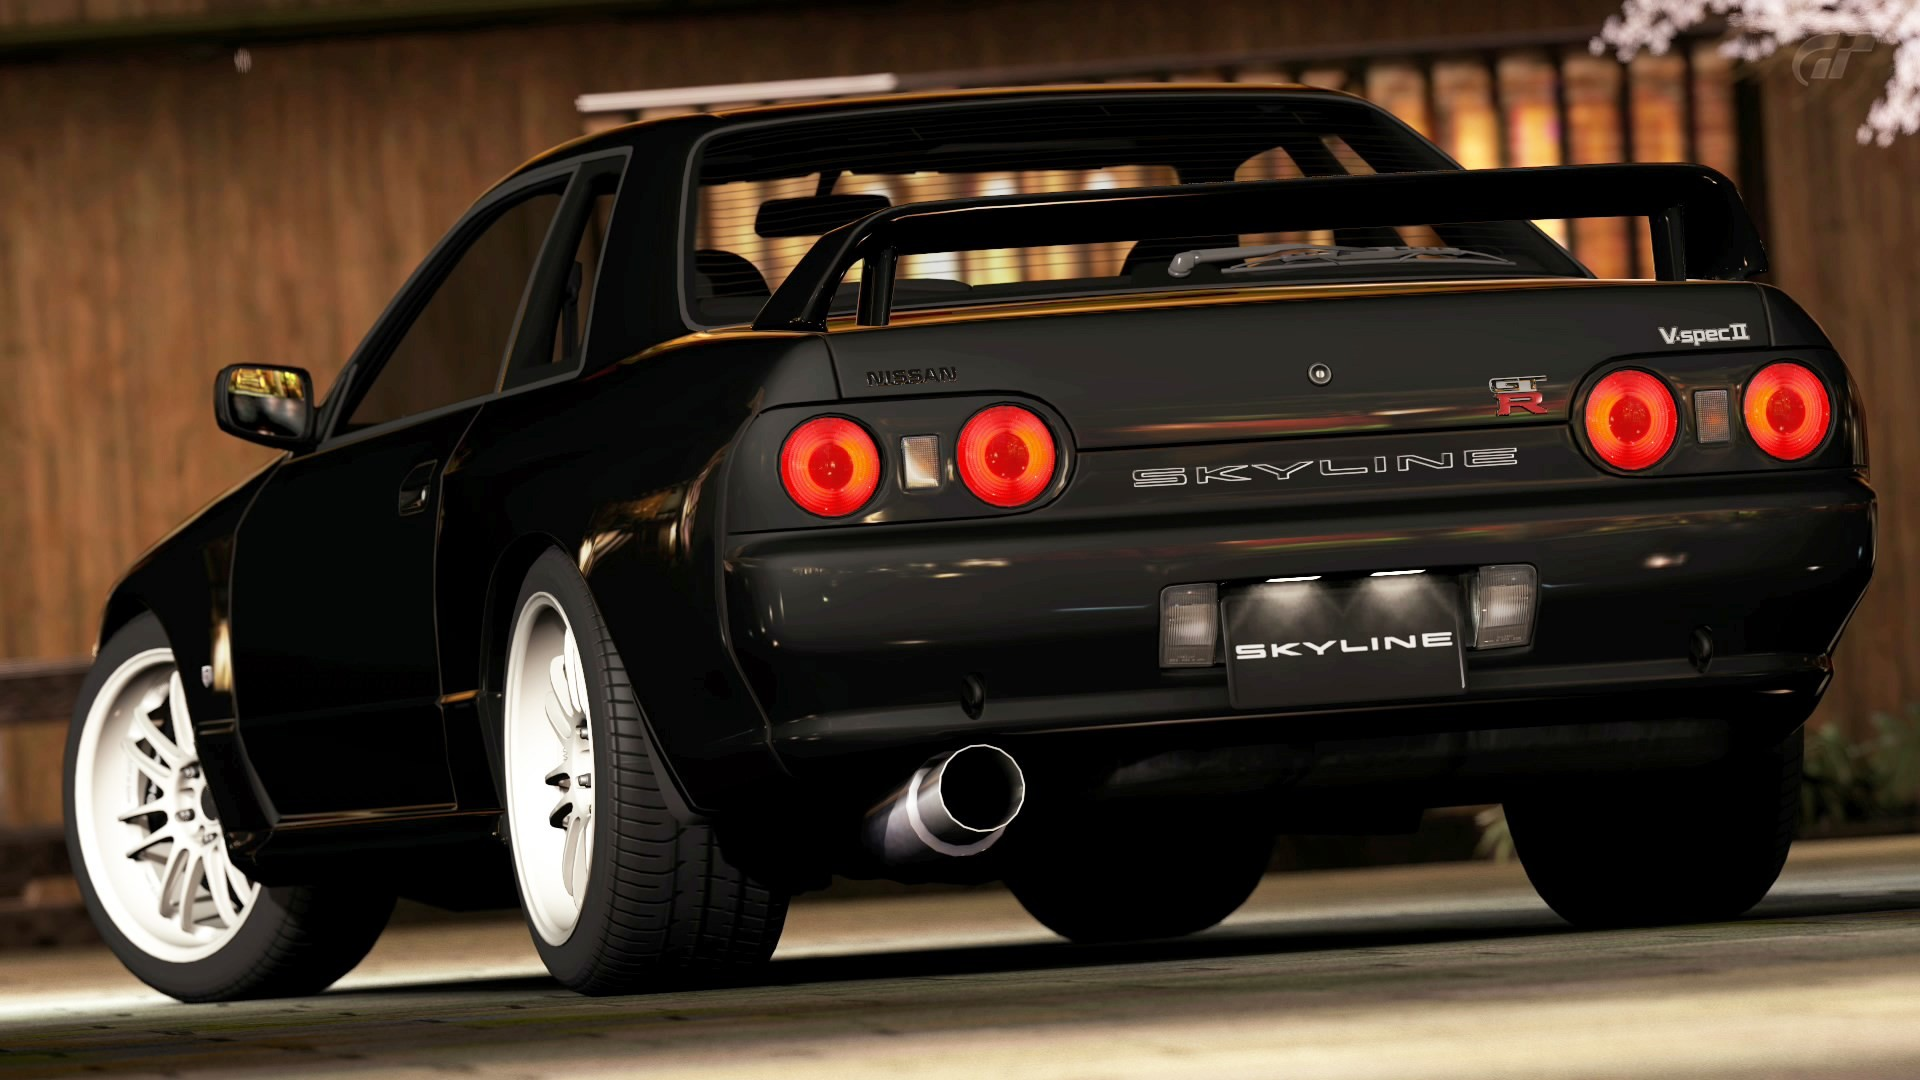 r32 gtr desktop backgrounds wallpaper (Claudia London 1920 x 1080)